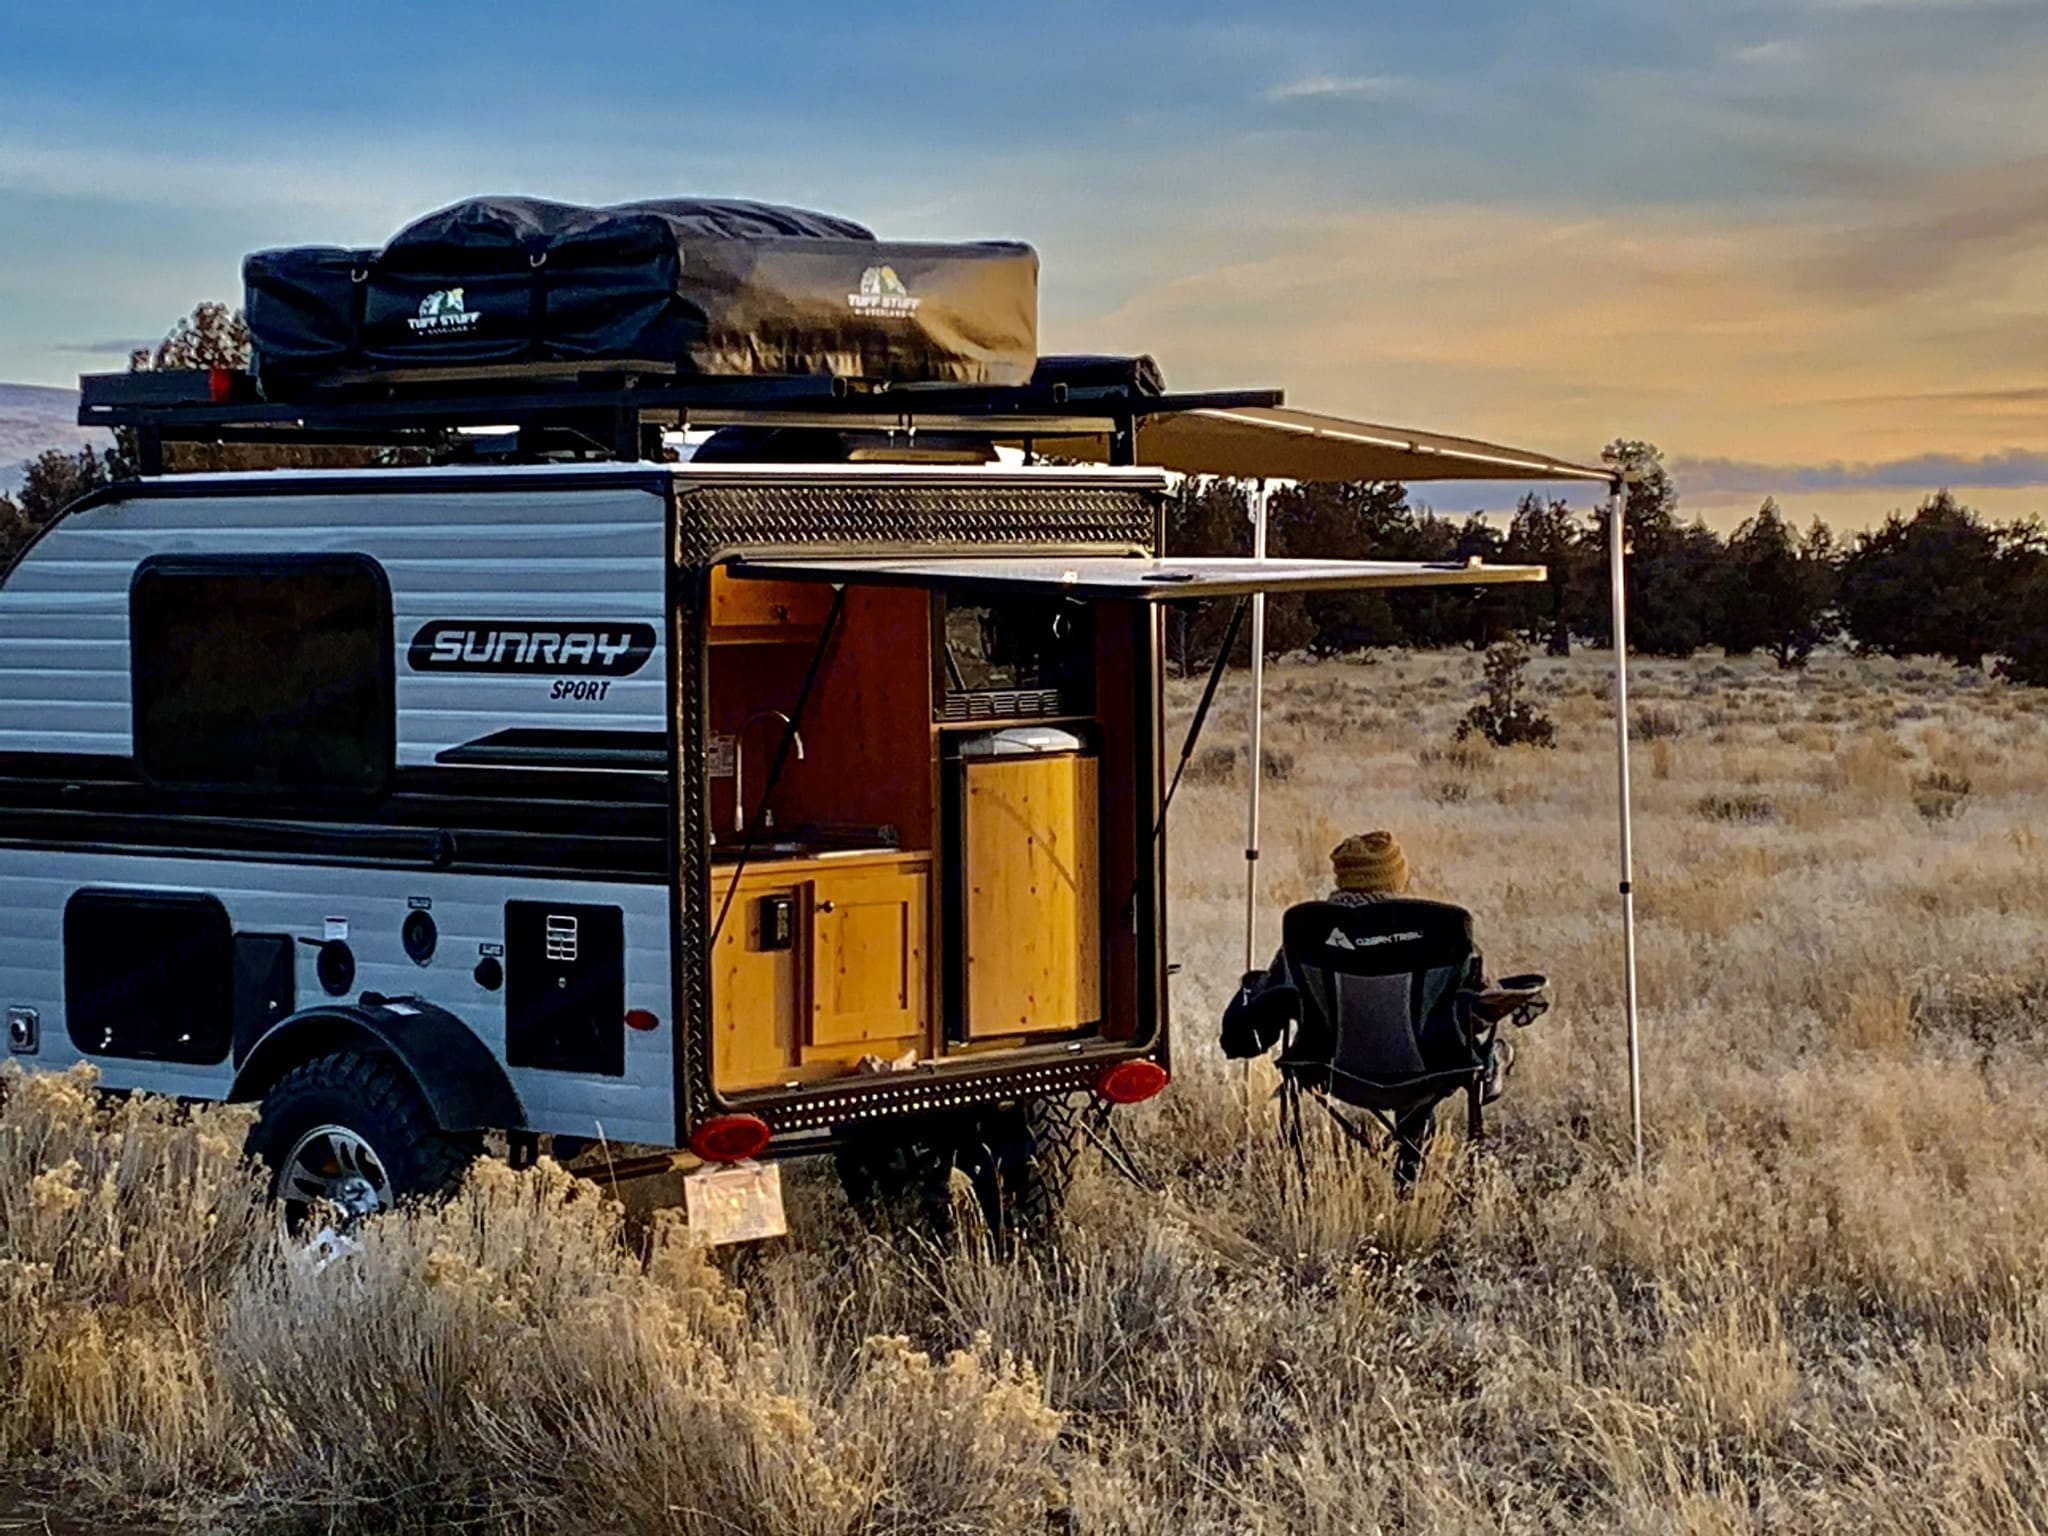 Stop anywhere and breakout  breakfast, lunch or dinner in this full kitchen.  Charge batteries all day with roof top solar. . Sunset Park & Rv Inc. Sunray 109 Sport 2021